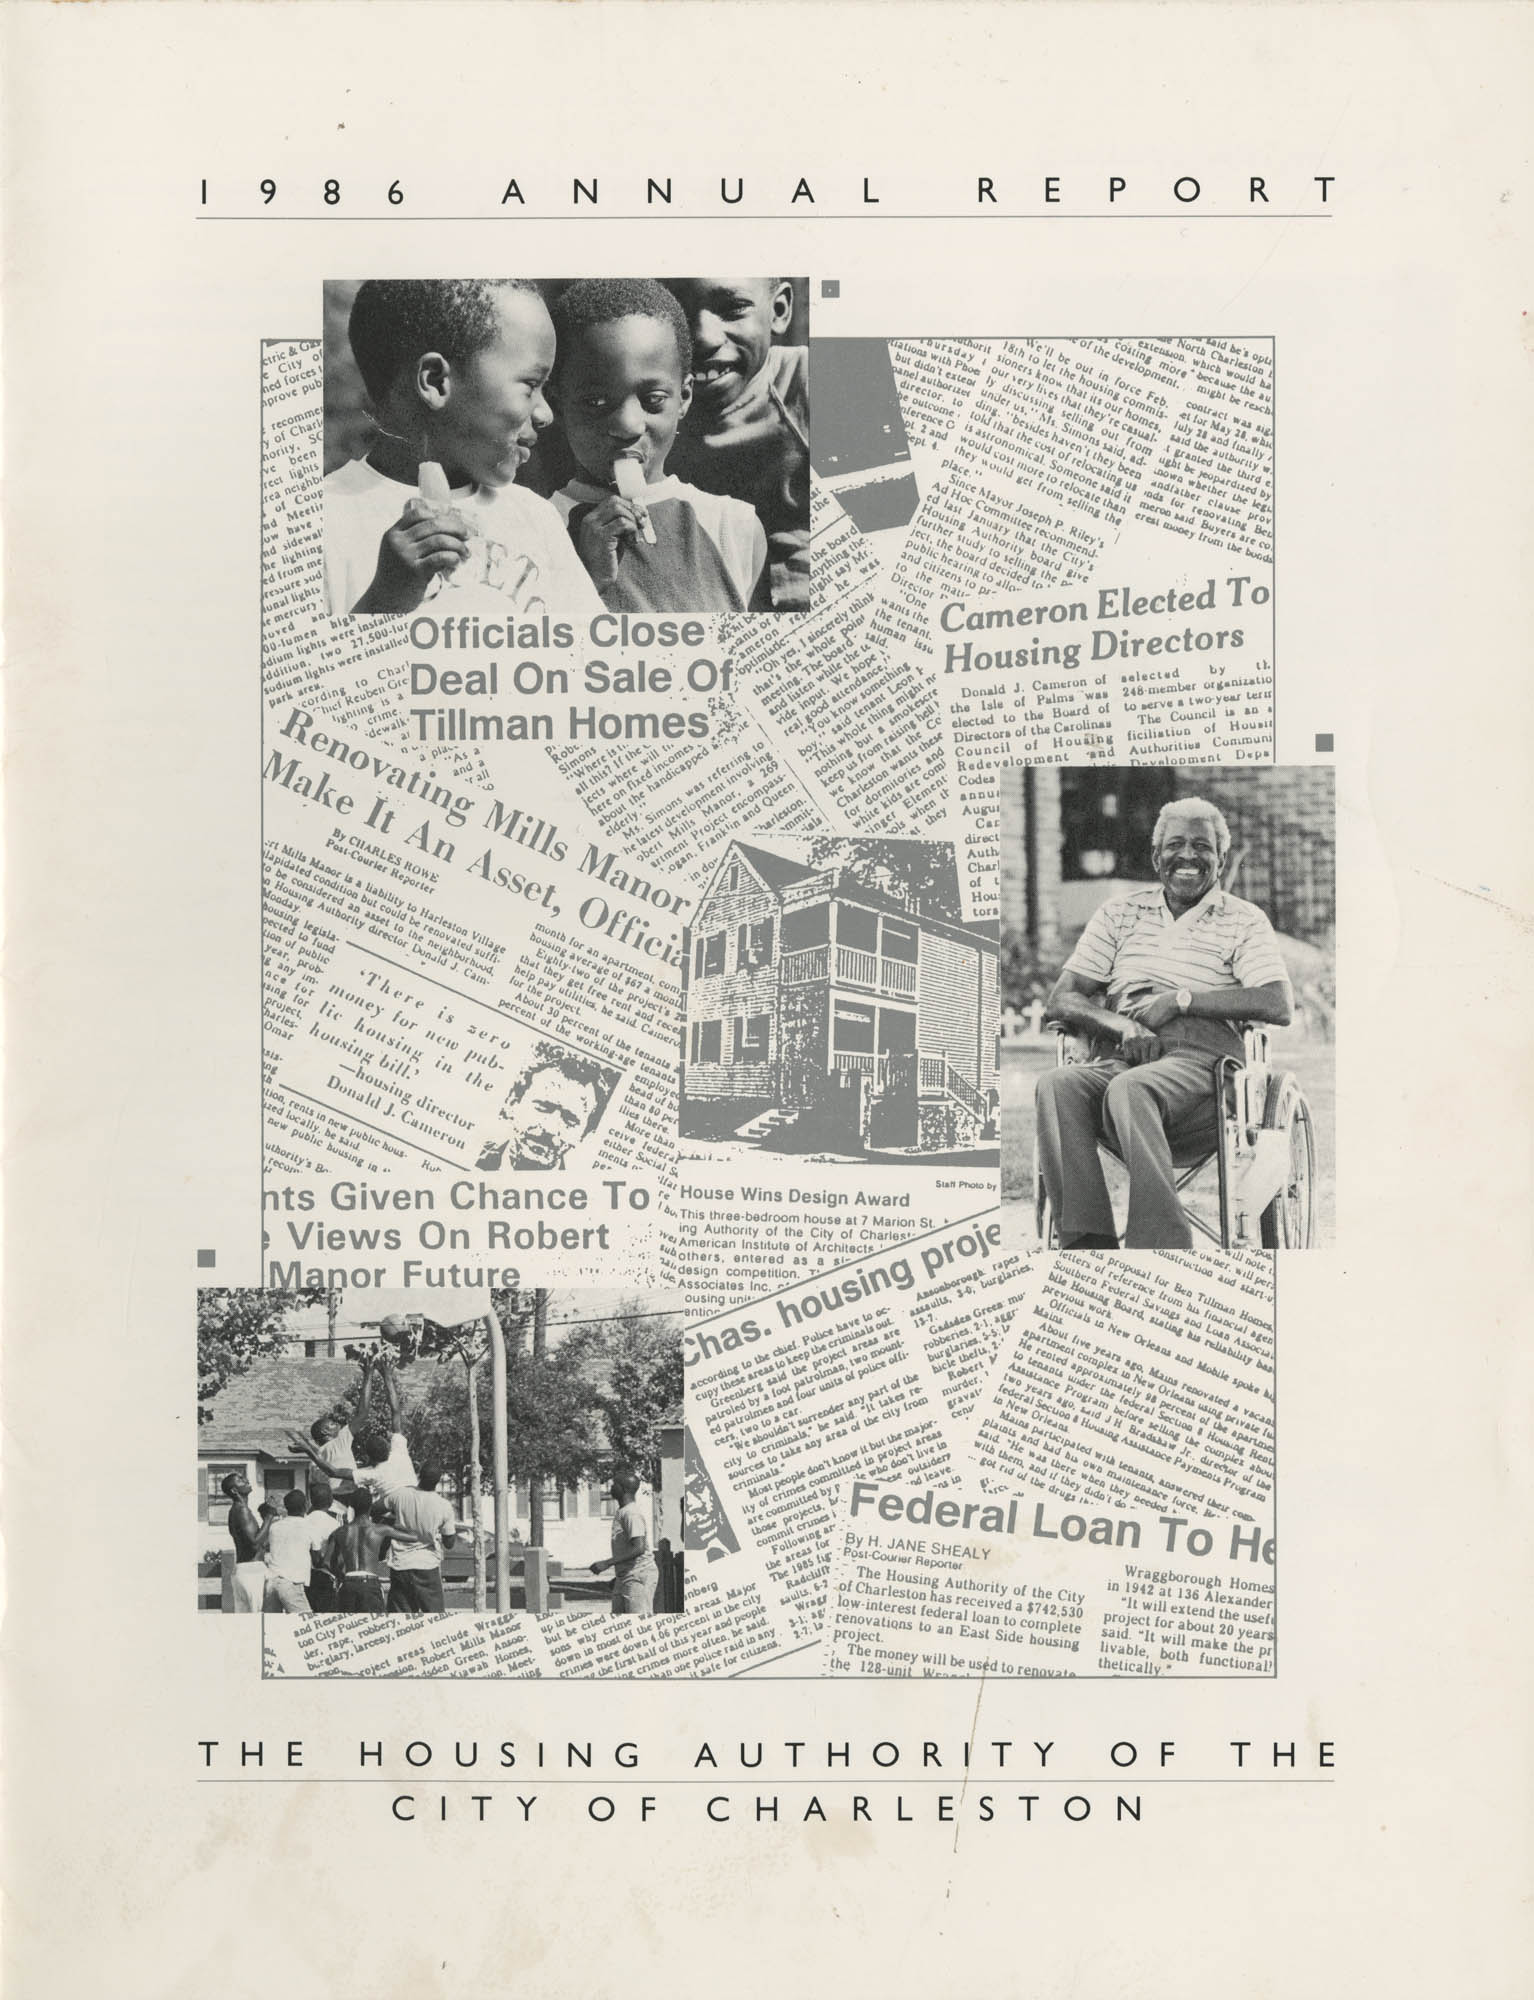 1986 Annual Report, The Housing Authority of the City of Charleston